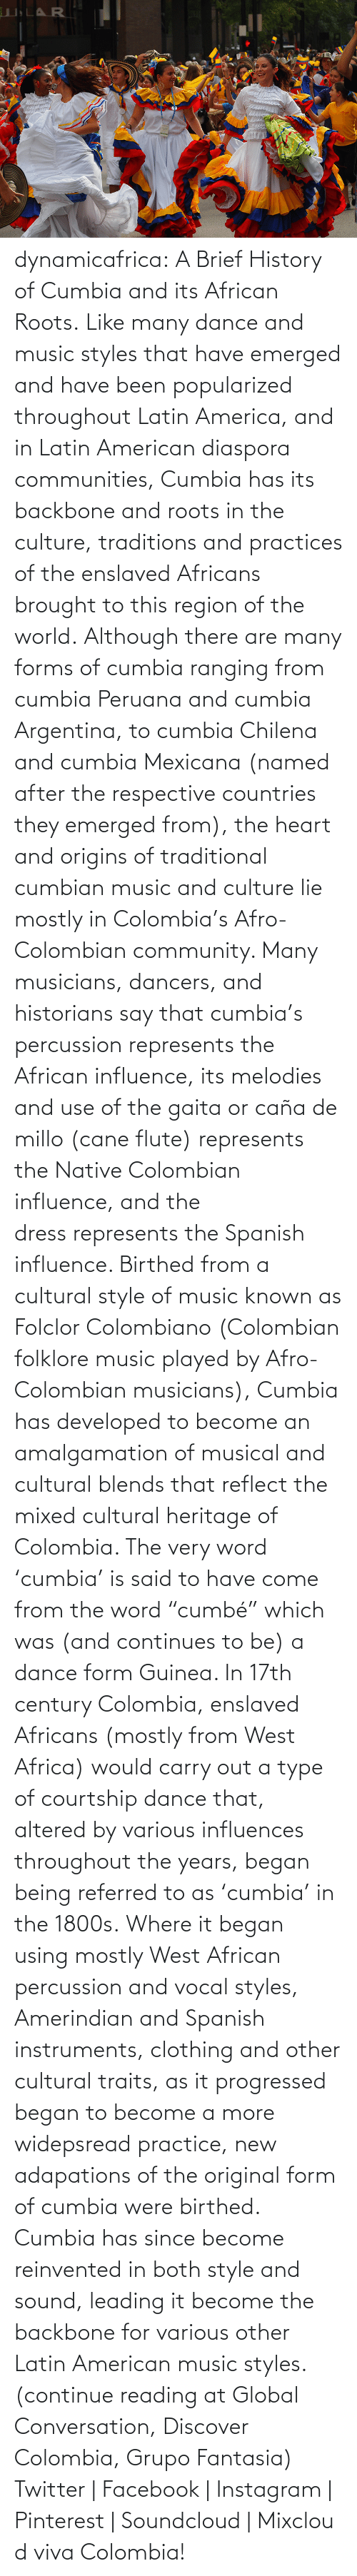 "diaspora: dynamicafrica:  A Brief History of Cumbia and its African Roots. Like many dance and music styles that have emerged and have been popularized throughout Latin America, and in Latin American diaspora communities, Cumbia has its backbone and roots in the culture, traditions and practices of the enslaved Africans brought to this region of the world. Although there are many forms of cumbia ranging from cumbia Peruana and cumbia Argentina, to cumbia Chilena and cumbia Mexicana (named after the respective countries they emerged from), the heart and origins of traditional cumbian music and culture lie mostly in Colombia's Afro-Colombian community. Many musicians, dancers, and historians say that cumbia's percussion represents the African influence, its melodies and use of the gaita or caña de millo (cane flute) represents the Native Colombian influence, and the dress represents the Spanish influence.  Birthed from a cultural style of music known as Folclor Colombiano (Colombian folklore music played by Afro-Colombian musicians), Cumbia has developed to become an amalgamation of musical and cultural blends that reflect the mixed cultural heritage of Colombia. The very word 'cumbia' is said to have come from the word ""cumbé"" which was (and continues to be) a dance form Guinea. In 17th century Colombia, enslaved Africans (mostly from West Africa) would carry out a type of courtship dance that, altered by various influences throughout the years, began being referred to as 'cumbia' in the 1800s. Where it began using mostly West African percussion and vocal styles, Amerindian and Spanish instruments, clothing and other cultural traits, as it progressed began to become a more widepsread practice, new adapations of the original form of cumbia were birthed. Cumbia has since become reinvented in both style and sound, leading it become the backbone for various other Latin American music styles.  (continue reading at Global Conversation, Discover Colombia, Grupo Fantasia) Twitter 